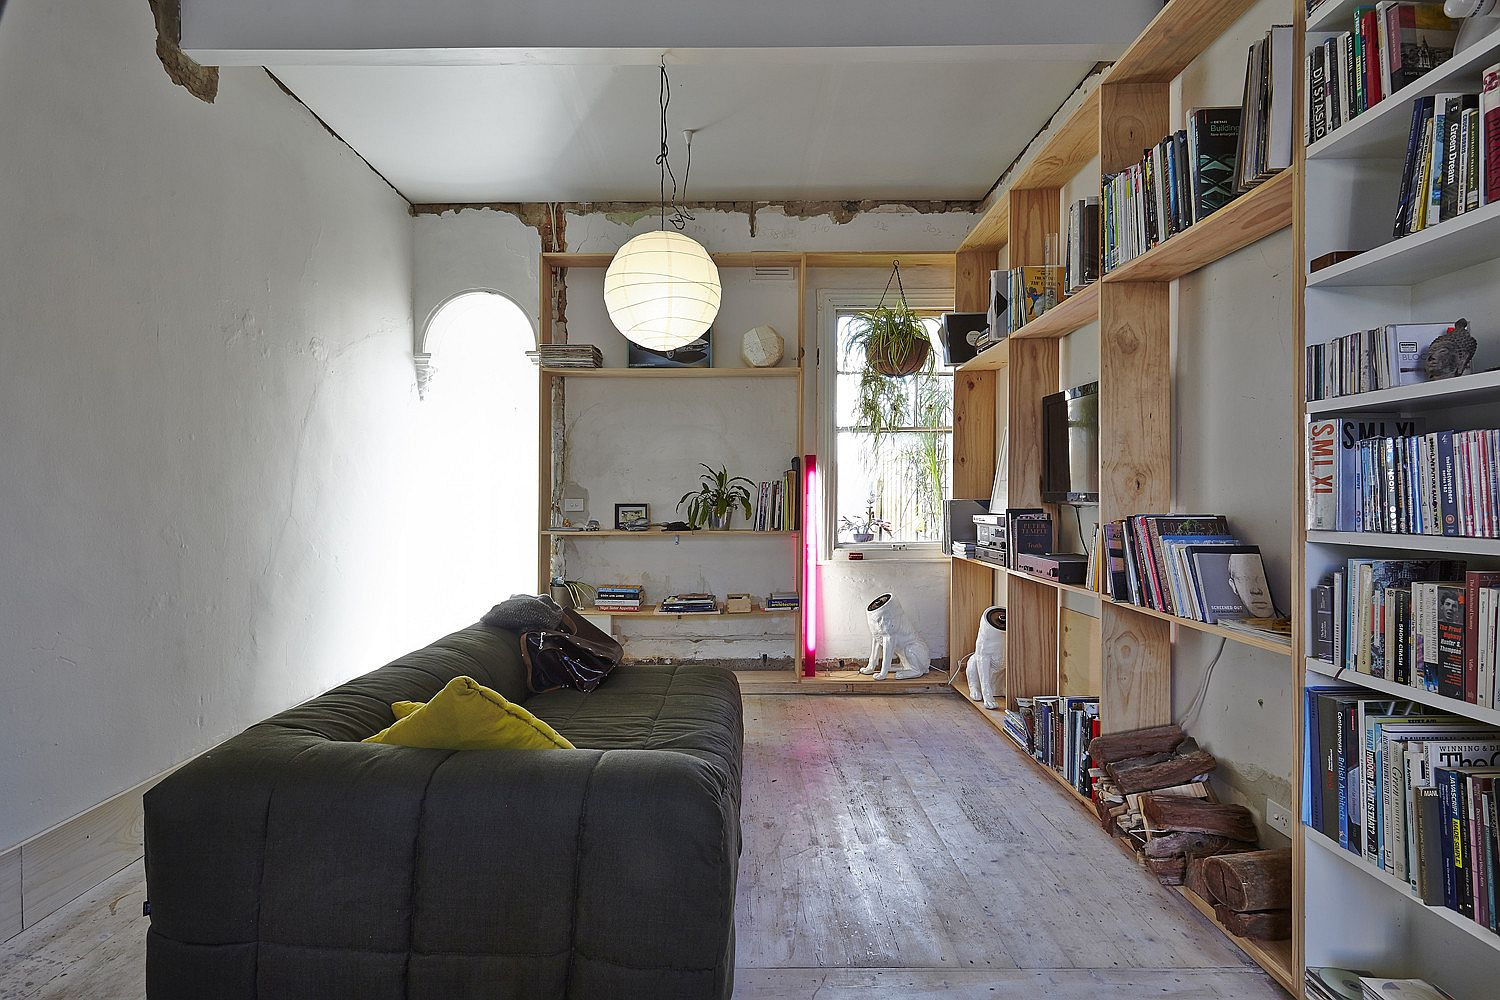 Wooden-shelves-in-the-living-area-offer-ample-space-of-books-and-decorative-pieces-58054